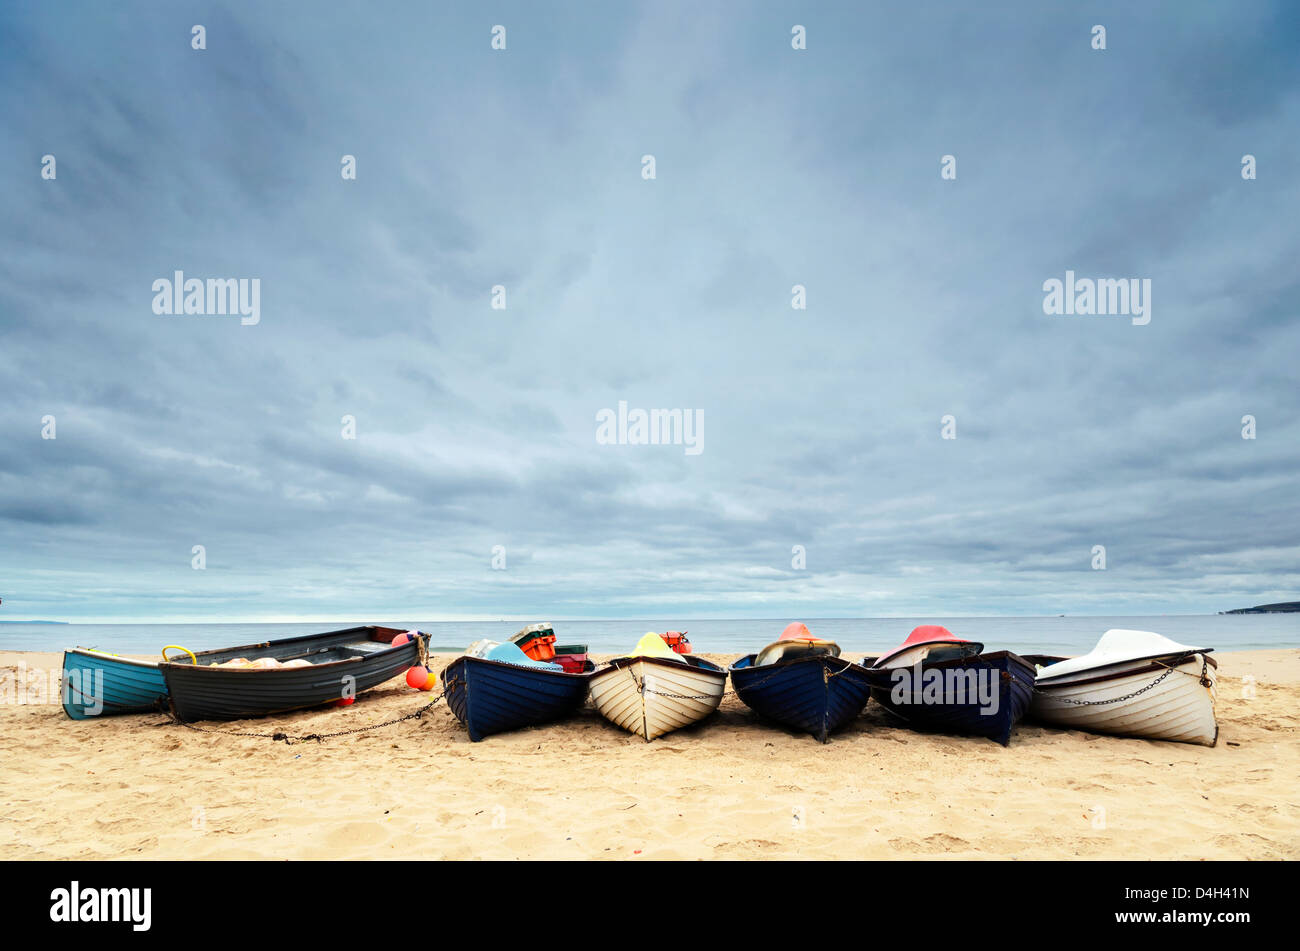 Fishing boats under a brooding sky at Durley Chine on Bournemouth beach. - Stock Image